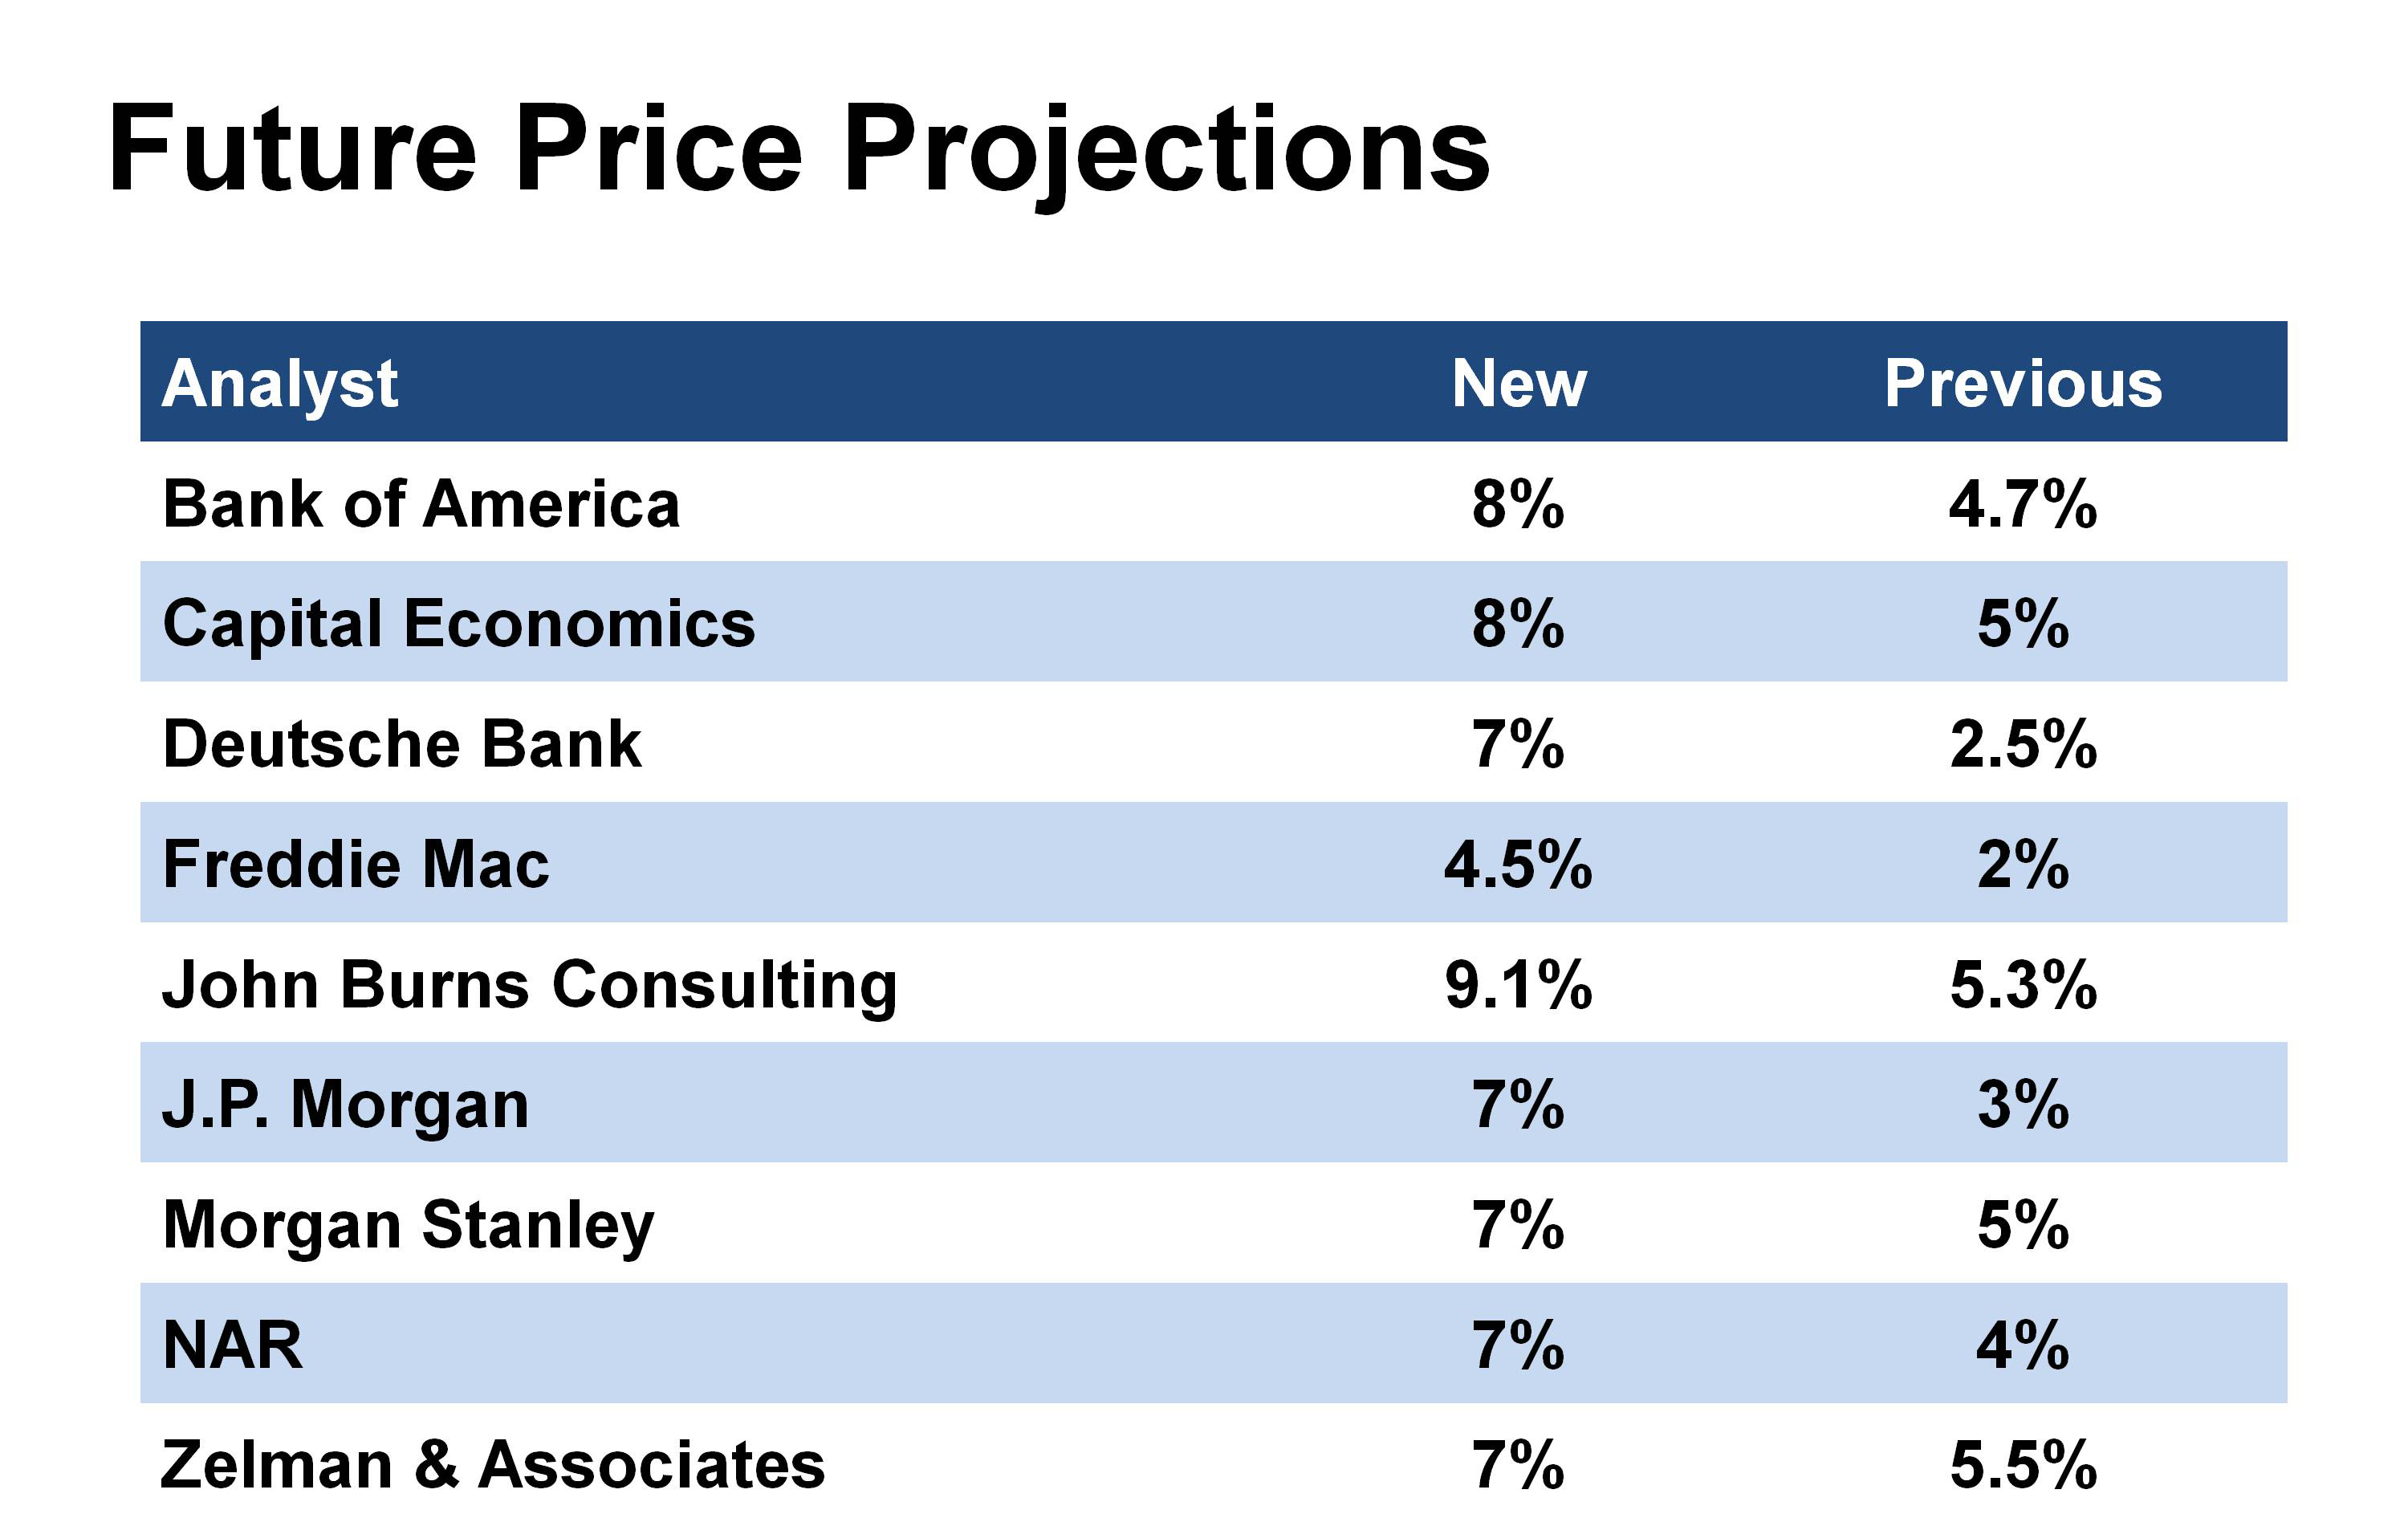 201305-FuturePriceProjections